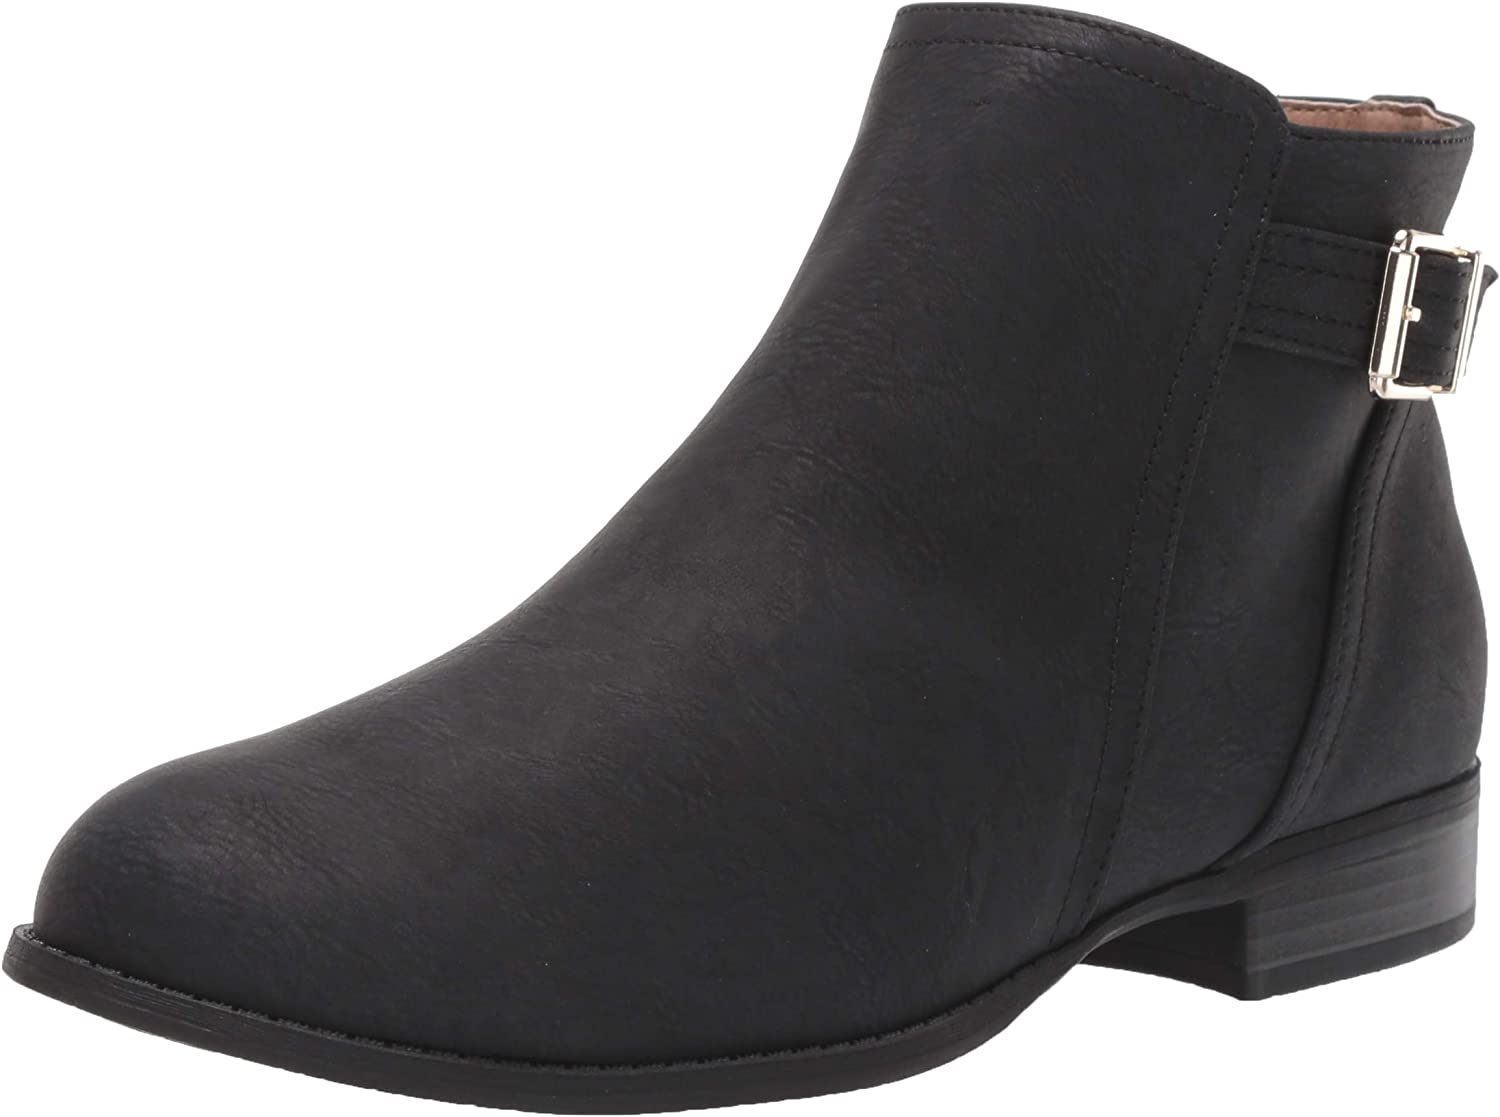 LifeStride Women's Max 73% OFF Fiery Long Beach Mall Ankle Boot